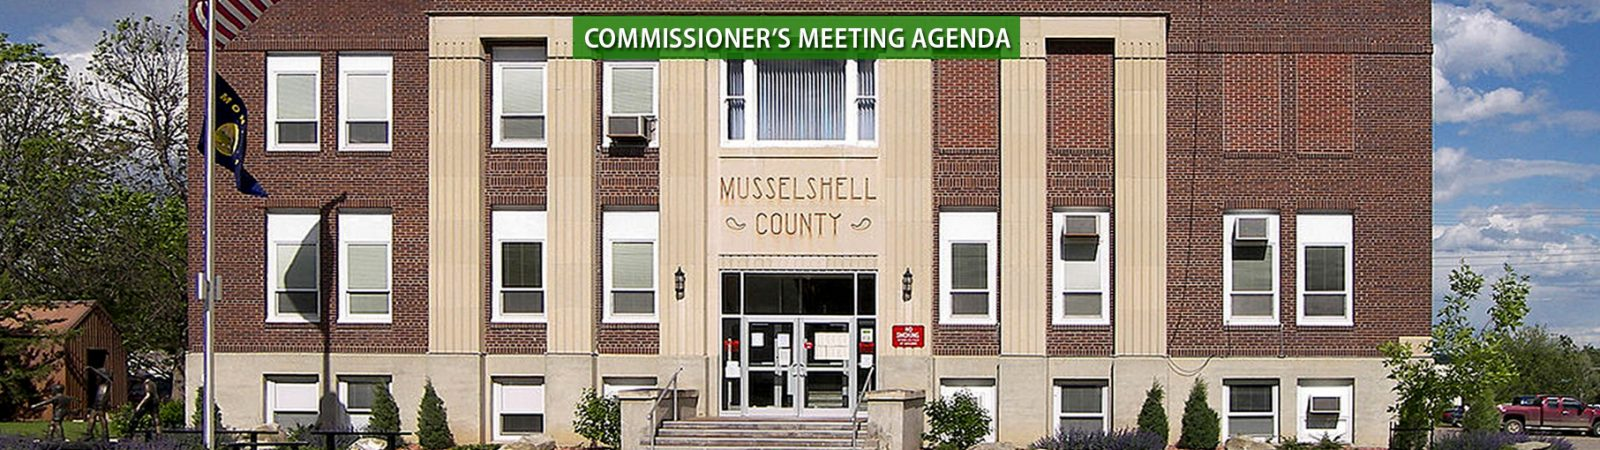 Musselshell County Commissioners Meeting Agenda